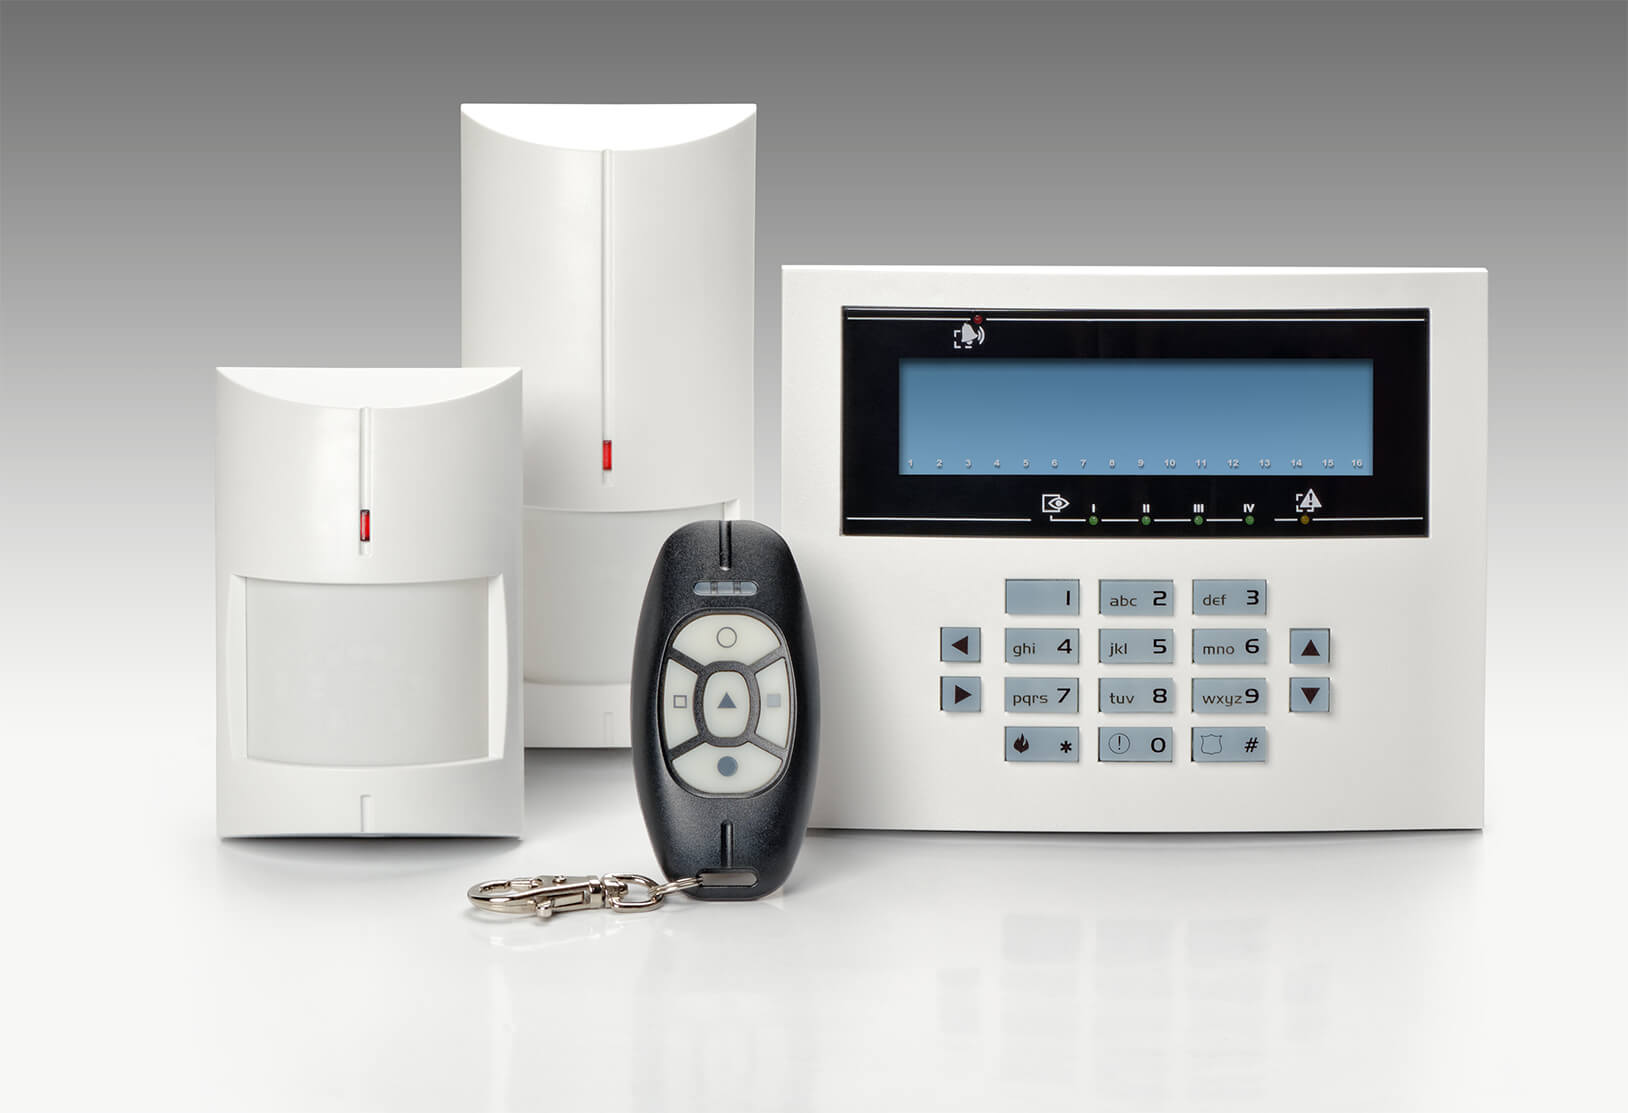 Business & Residential NACOSS Approved Burglar Alarms In Victoria SW1 - Local Victoria SW1 security company.Call 02078872244 - Dedicated to Safety & Security. Companies, shops and homes ..